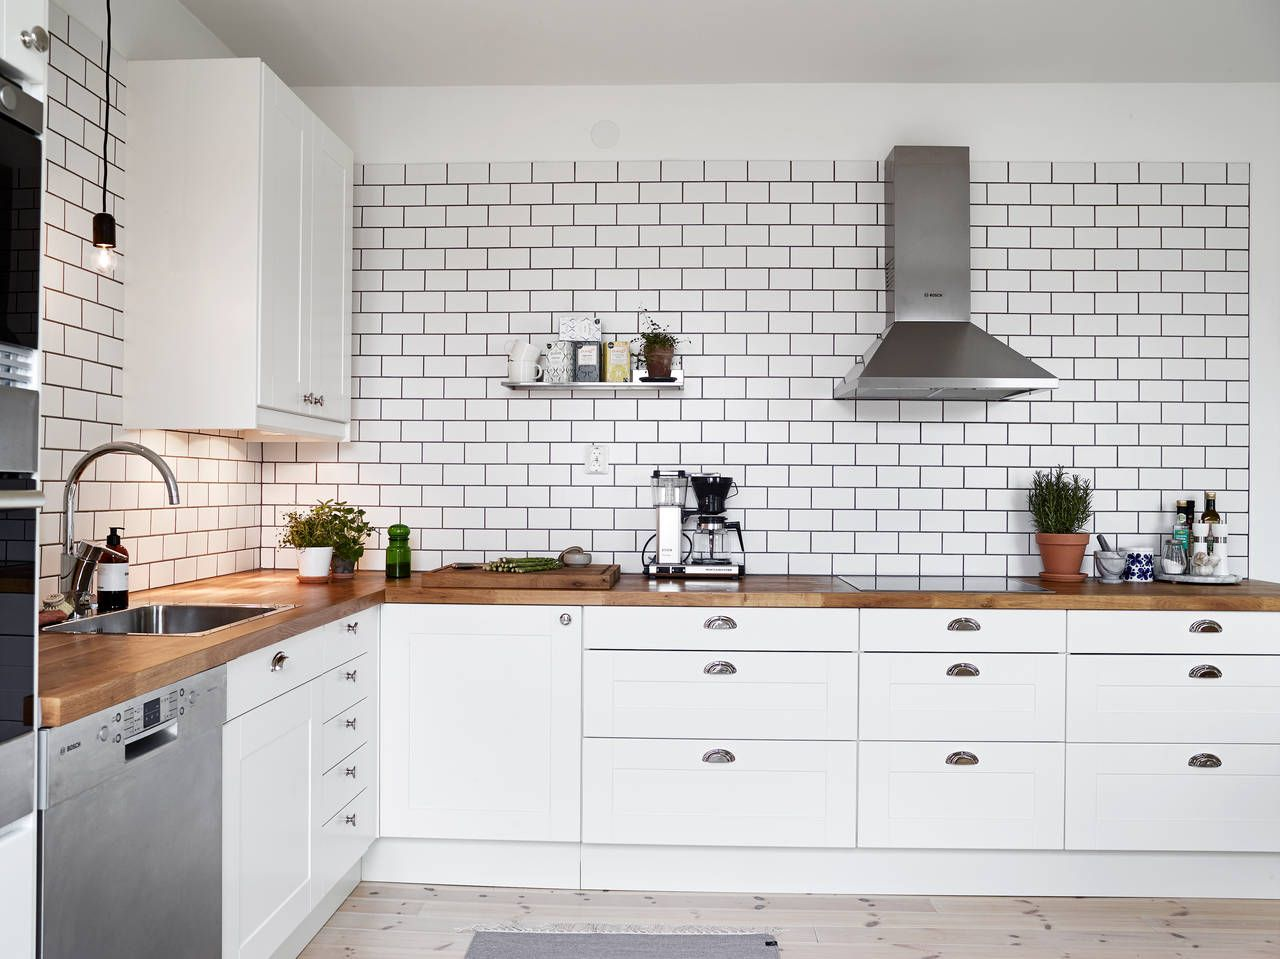 Tiles In Kitchen A White Tiles Black Grout Kind Of Kitchen Coco Lapine Design